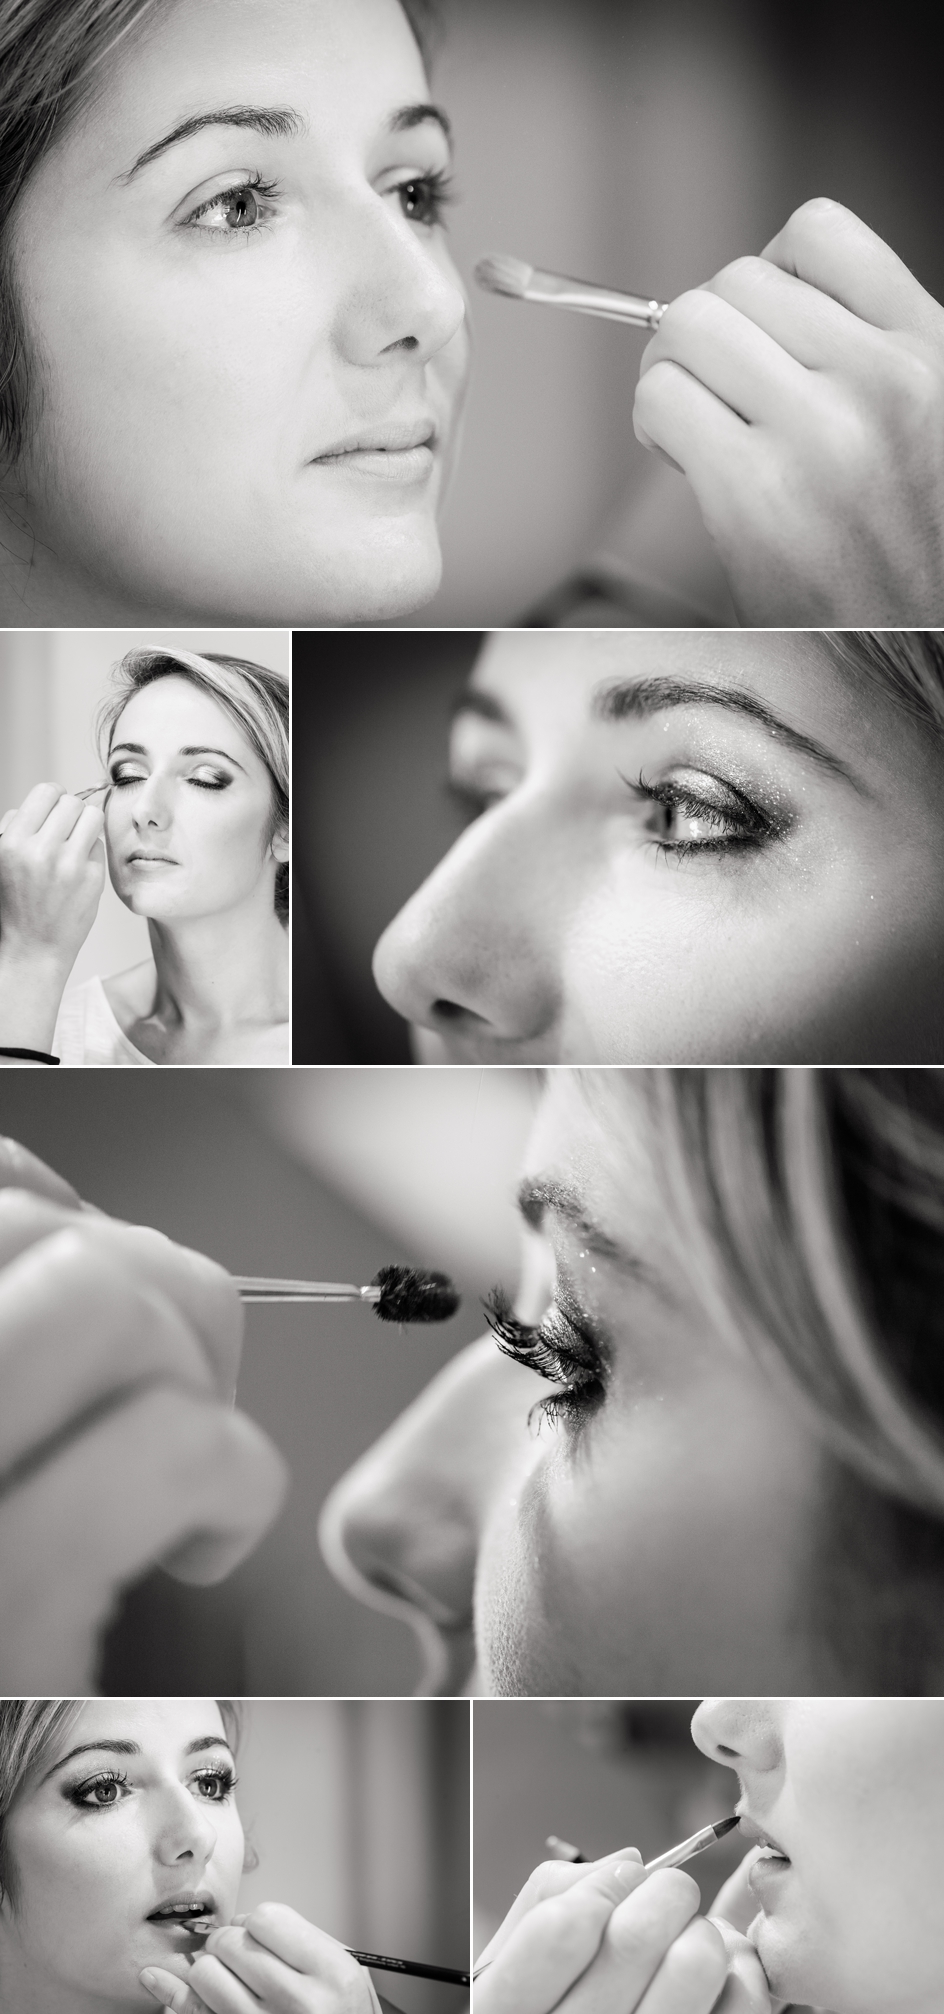 03-MAQUILLAGE POUR MARIAGE